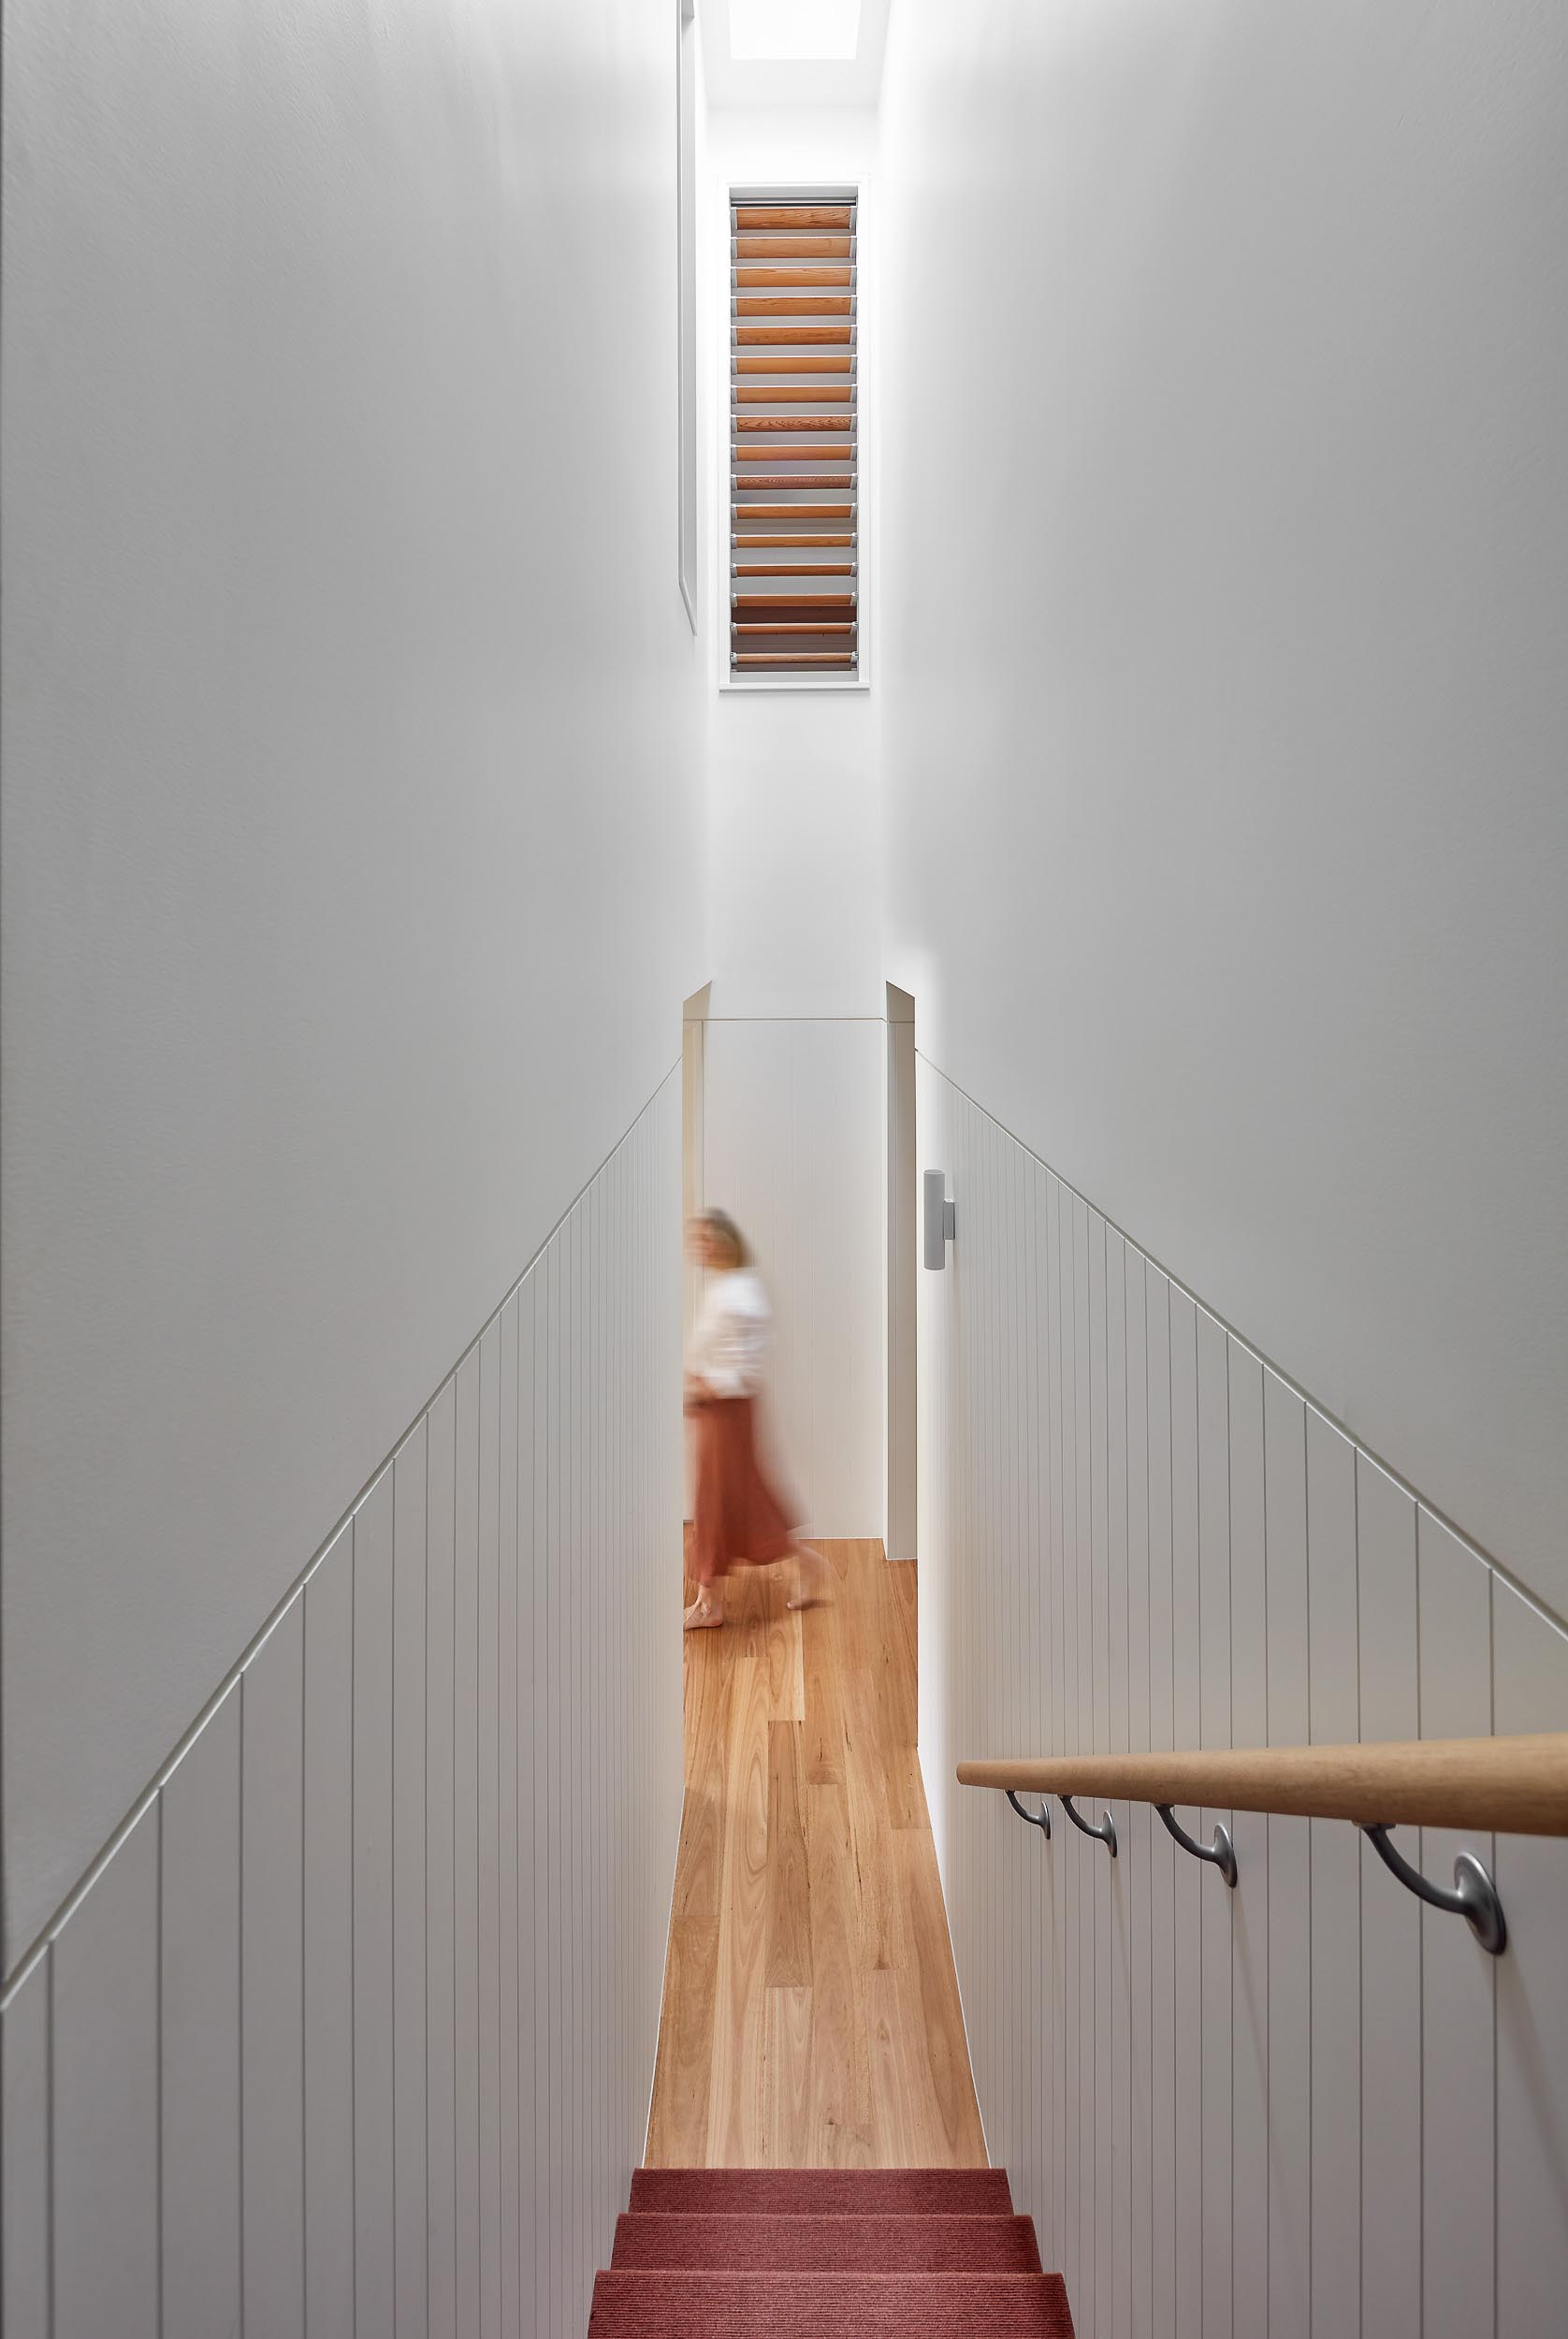 A staircase with a skylight connects the various floors of this renovated home.